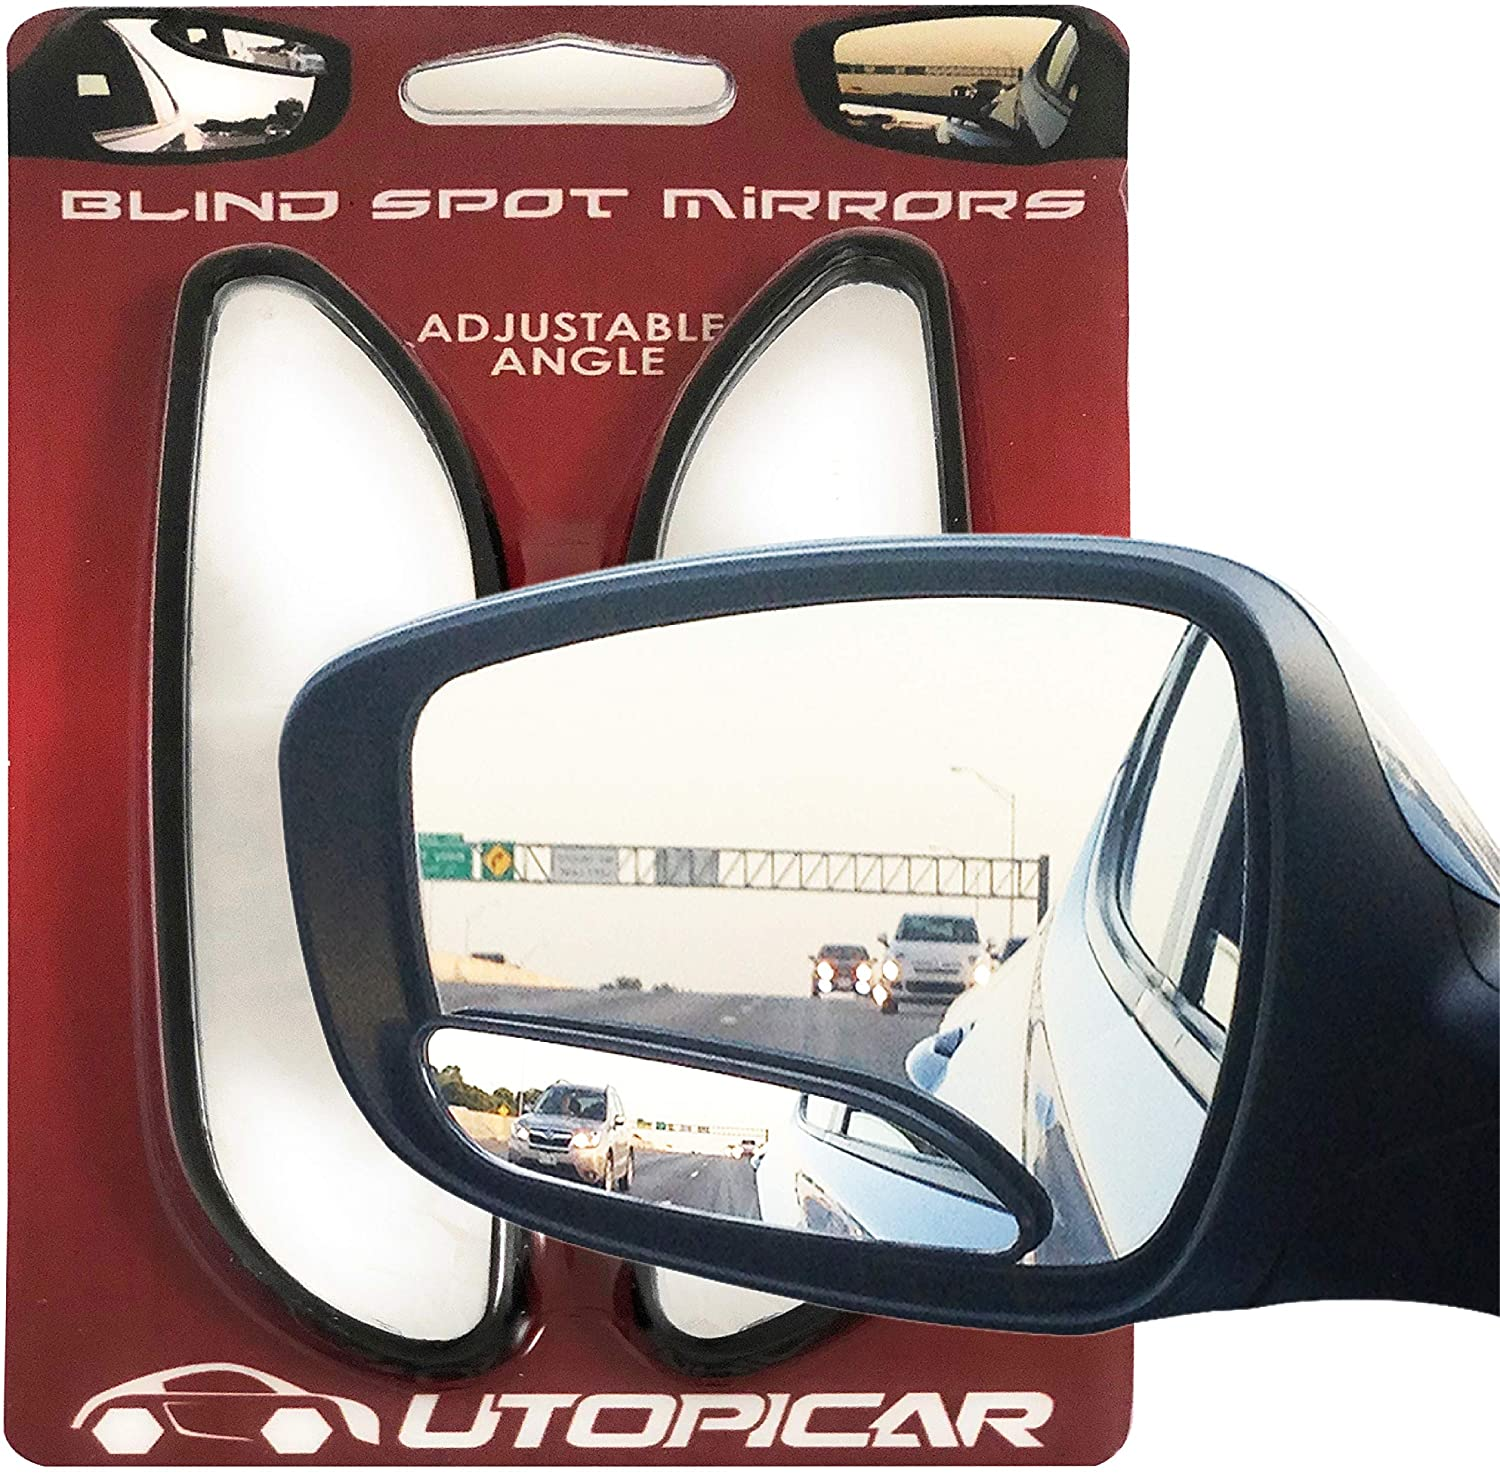 Utopical Stick-on Blind Spot Mirrors